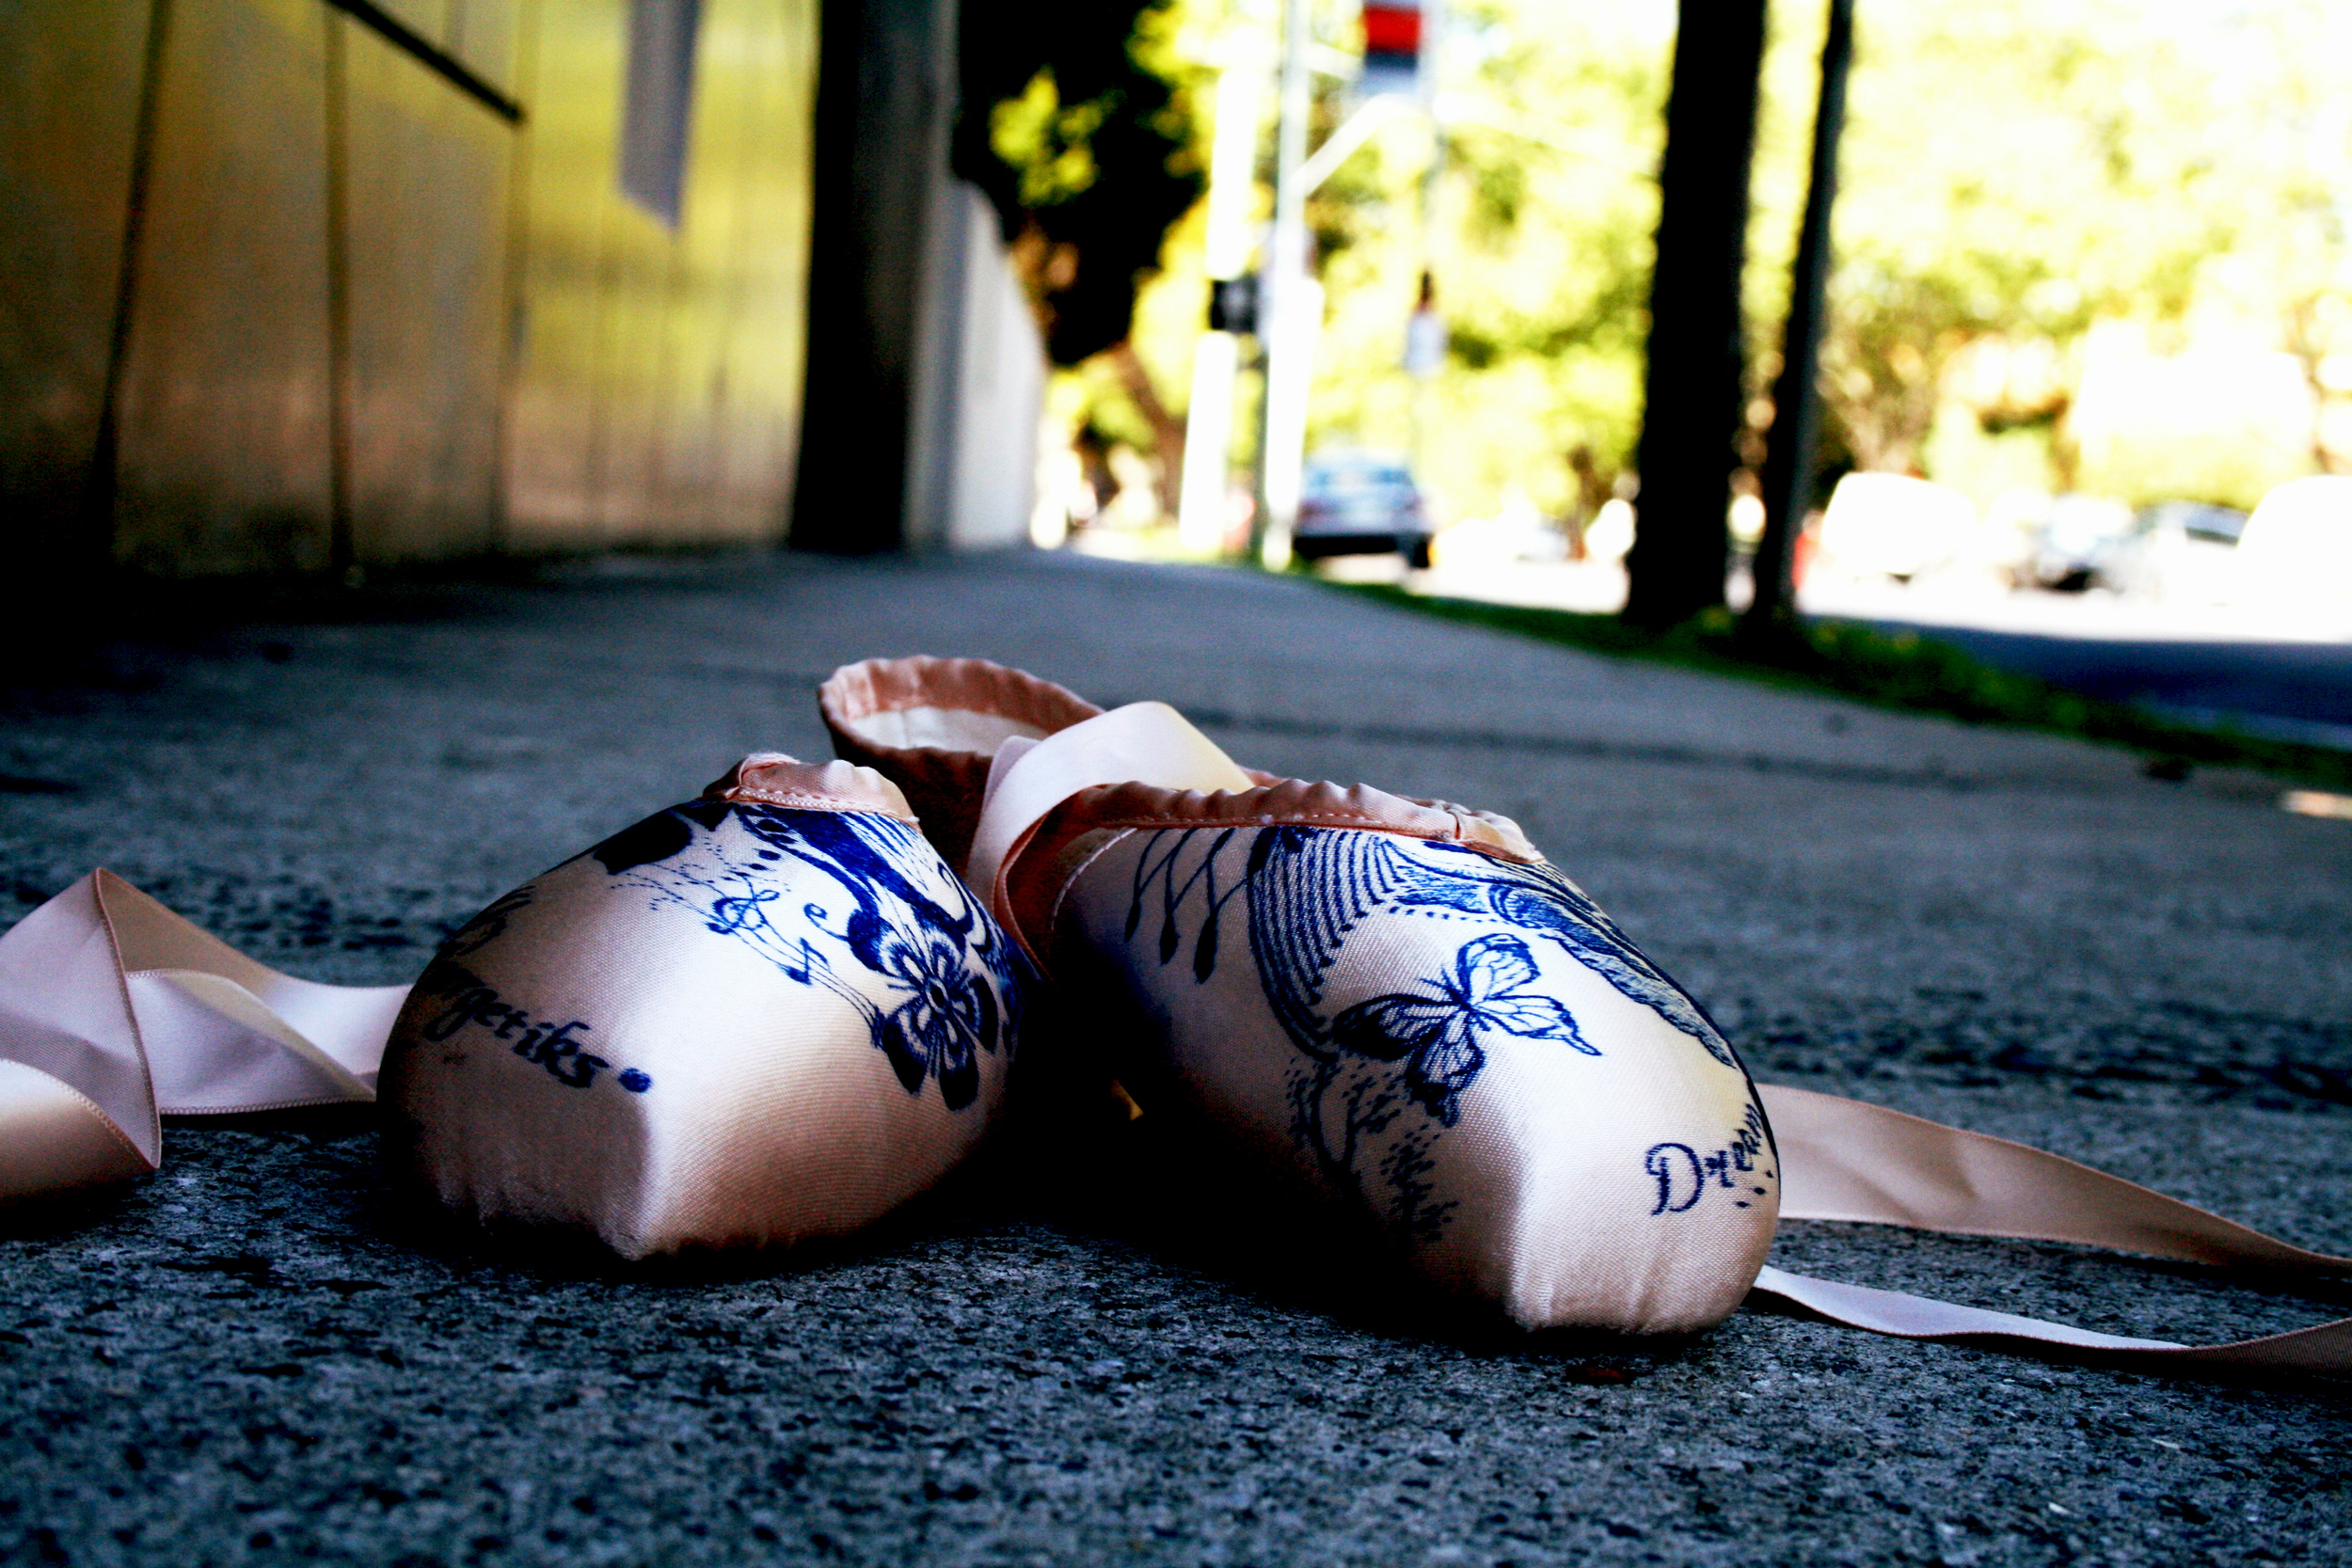 Pointe shoes on street2